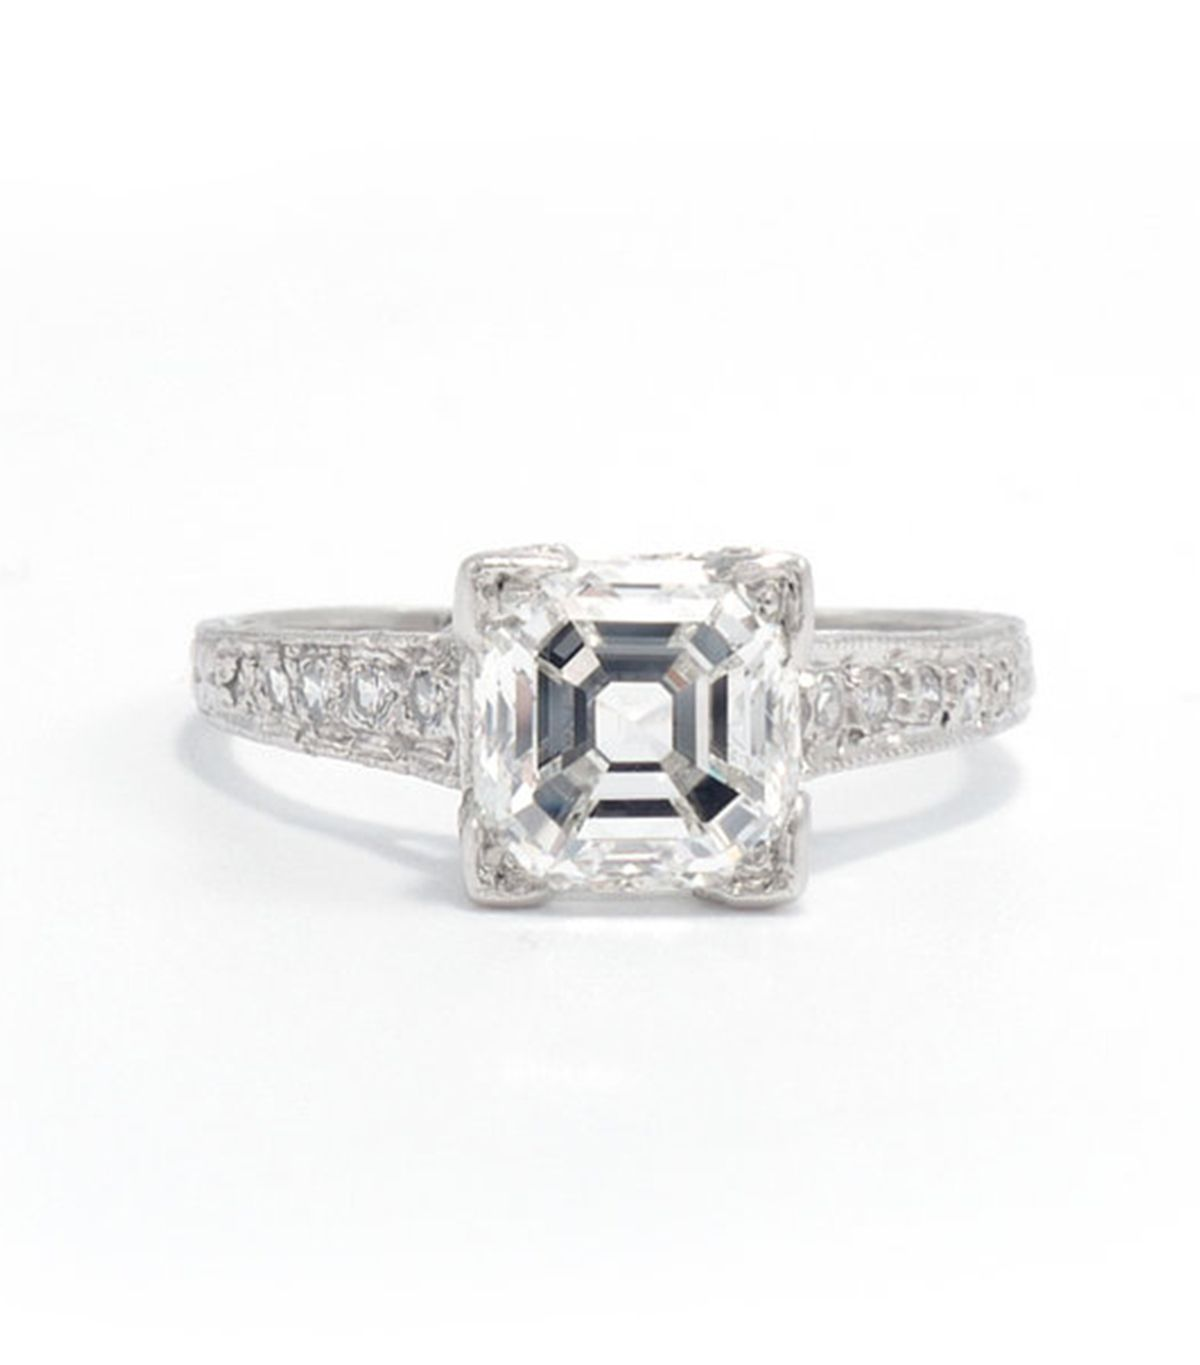 7 Things That Always Make an Engagement Ring Look Cheap 4